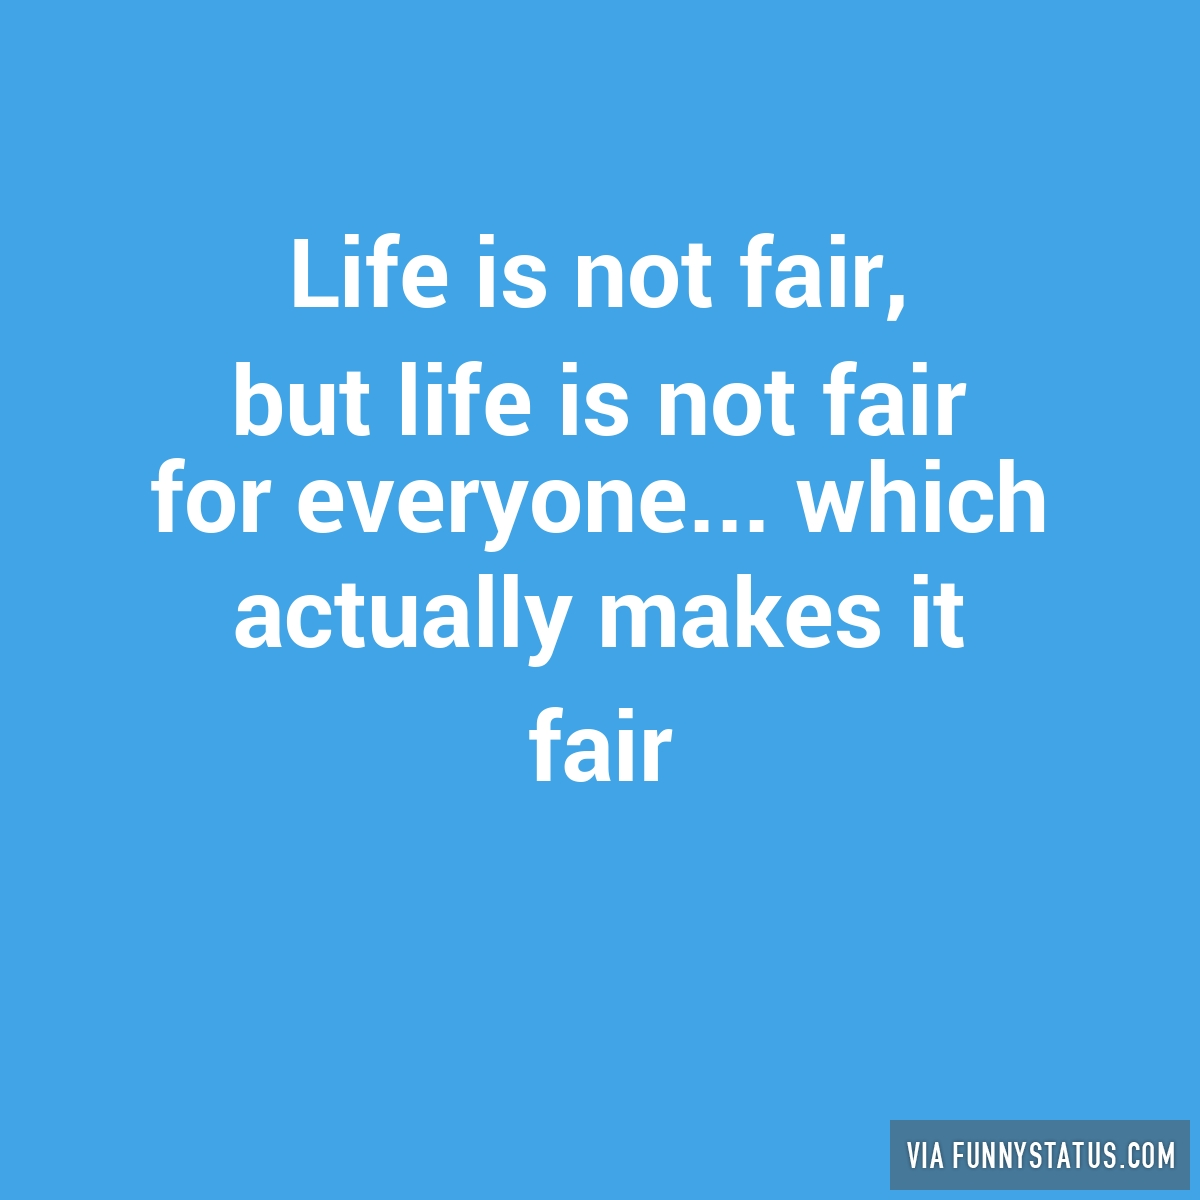 life is not fair quotes images